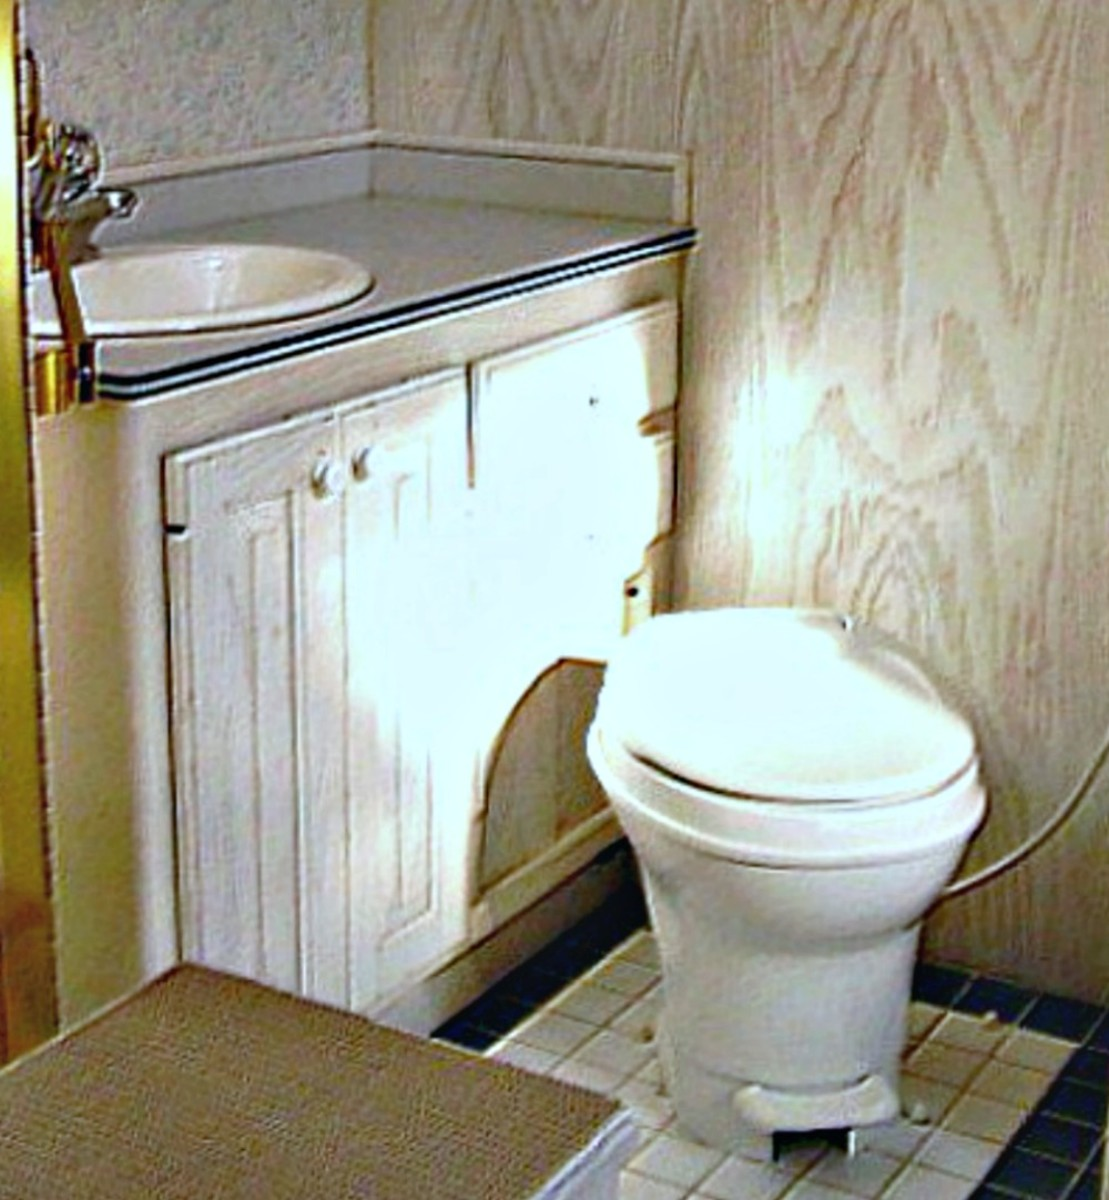 How To Get Rid Of Rv Toilet Odor In 3 Easy Steps Axleaddict A Community Of Car Lovers Enthusiasts And Mechanics Sharing Our Auto Advice